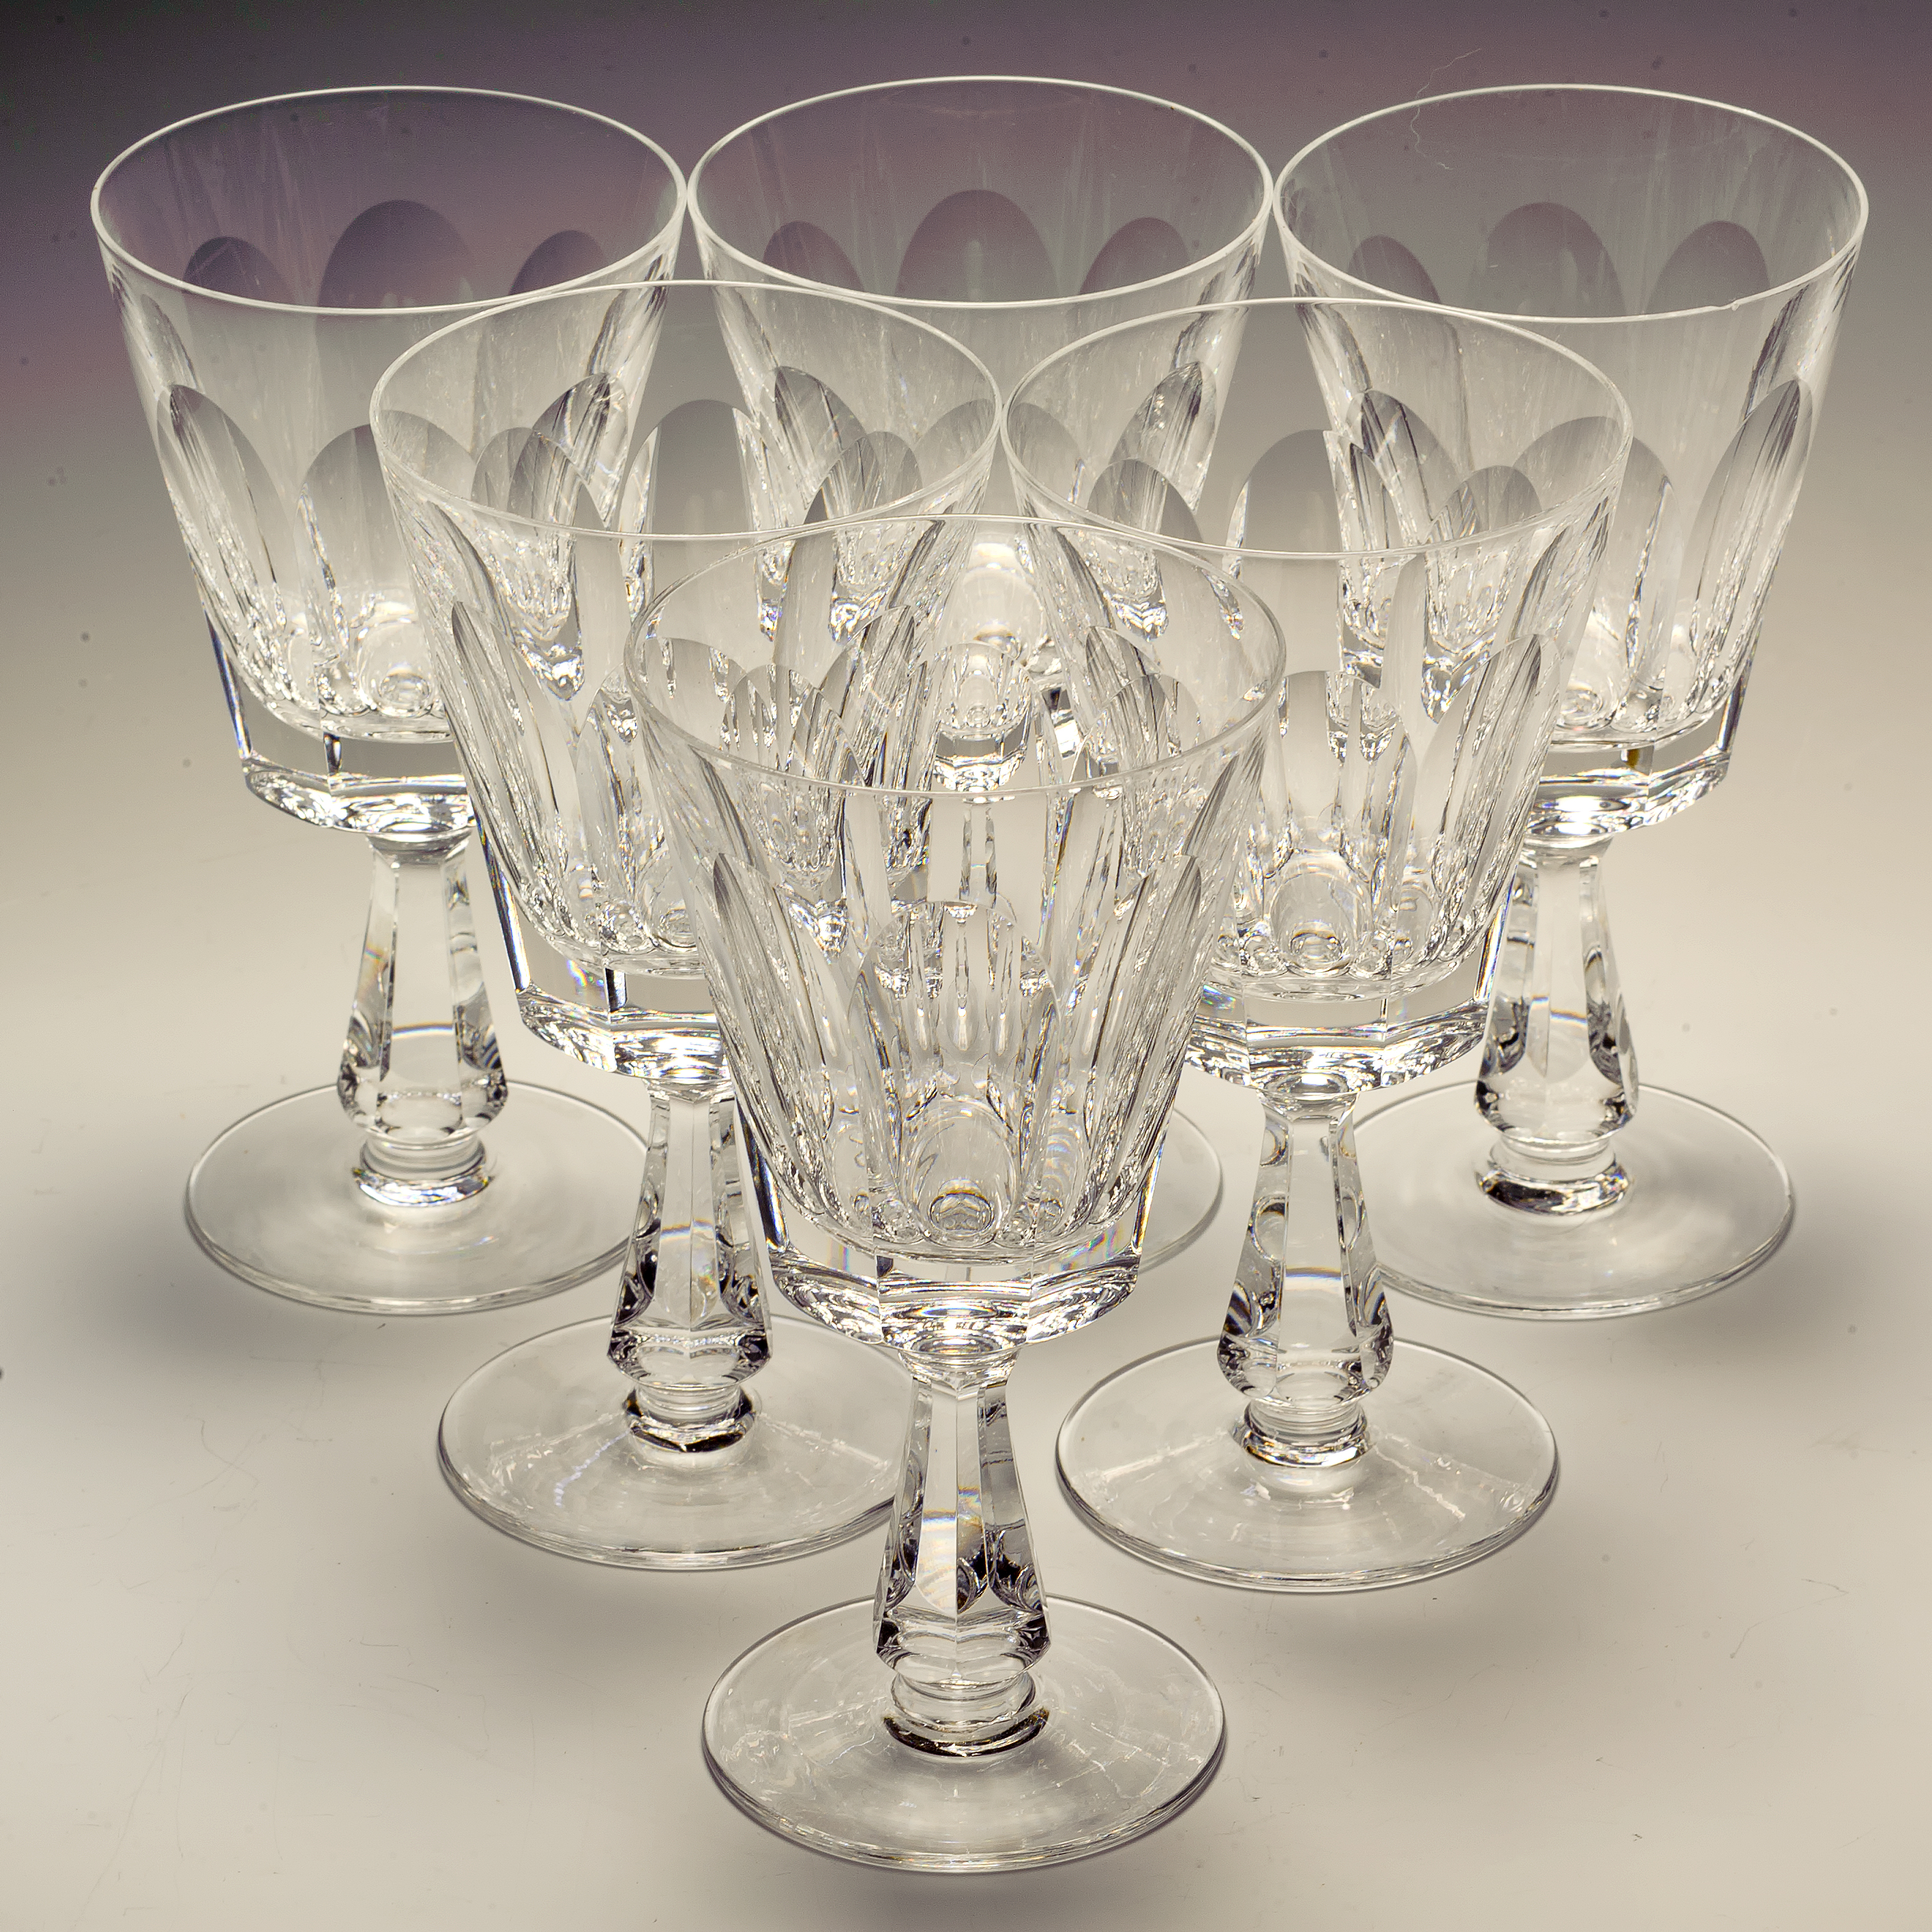 Waterford Crystal Glencree Six Large Wine / Water Goblets Firsts Signed | eBay